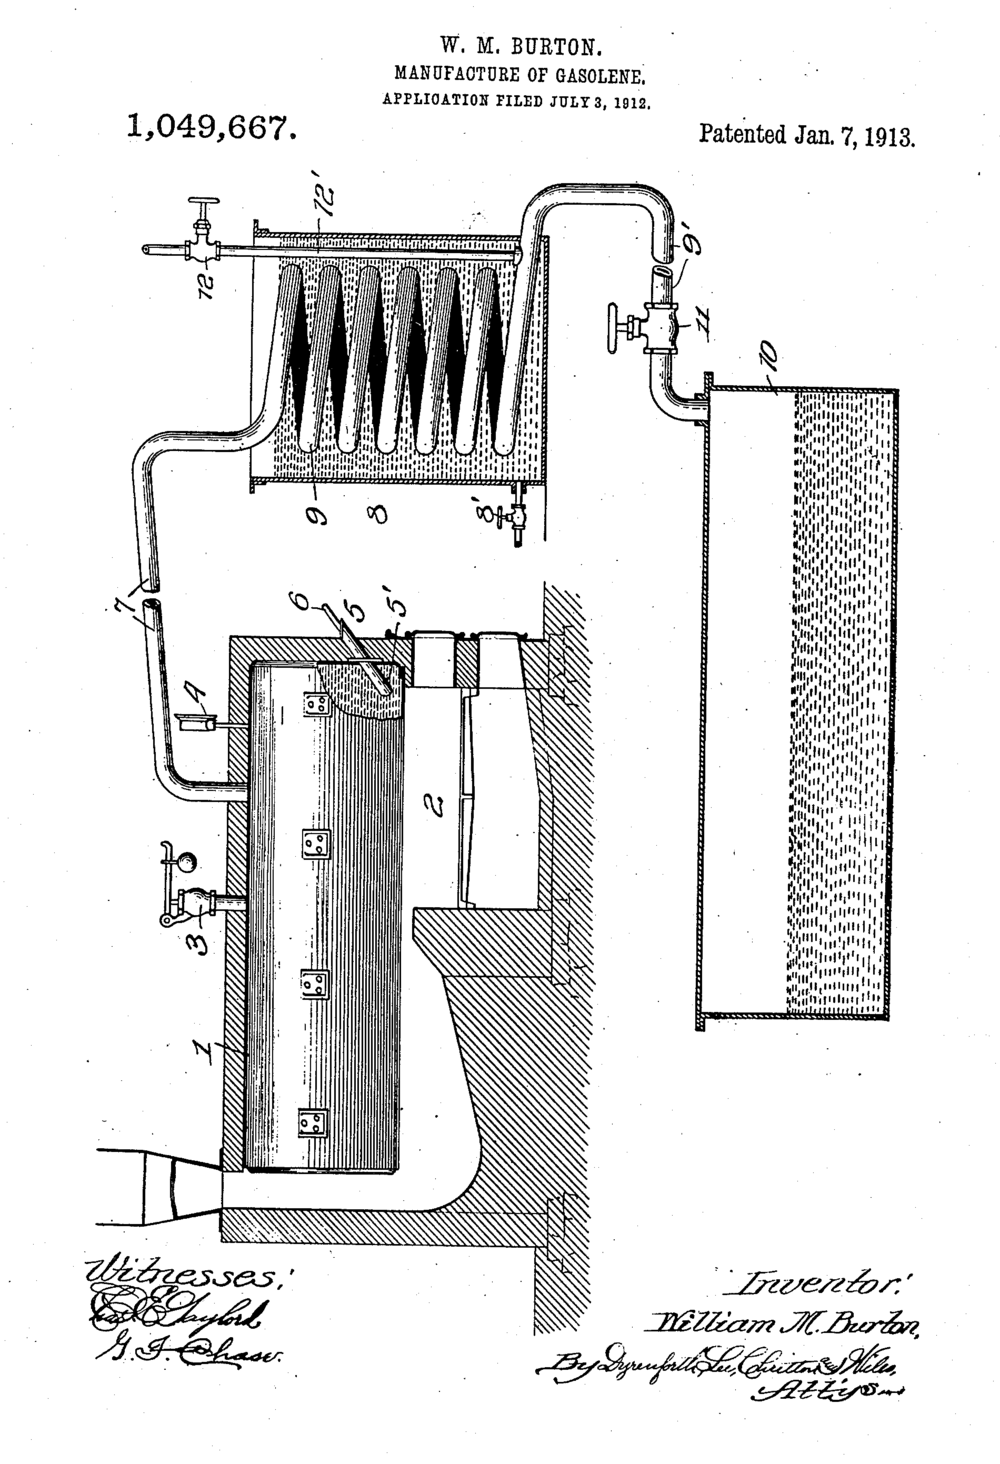 Manufacture of gasoline [ sic ], US patent 1049667, William M. Burton, 1913. Image source:  Patent #: US001049667  (accessed from  United States Patent and Trademark Office  )  by William M. Burton is licensed under  Public Domain Mark 1.0